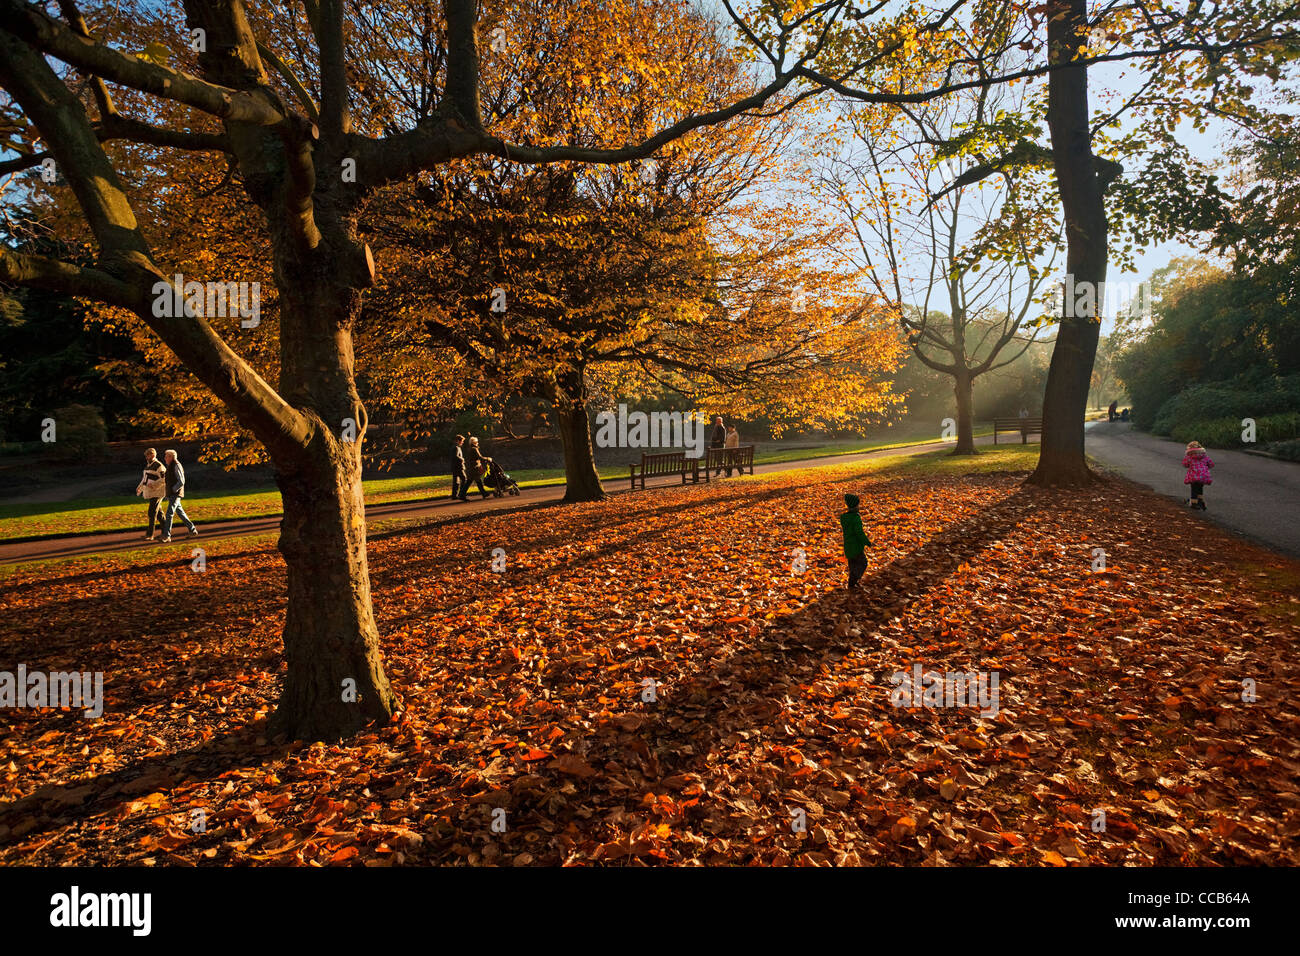 Autumn Colours, Royal Botanic Garden, Edinburgh - Stock Image